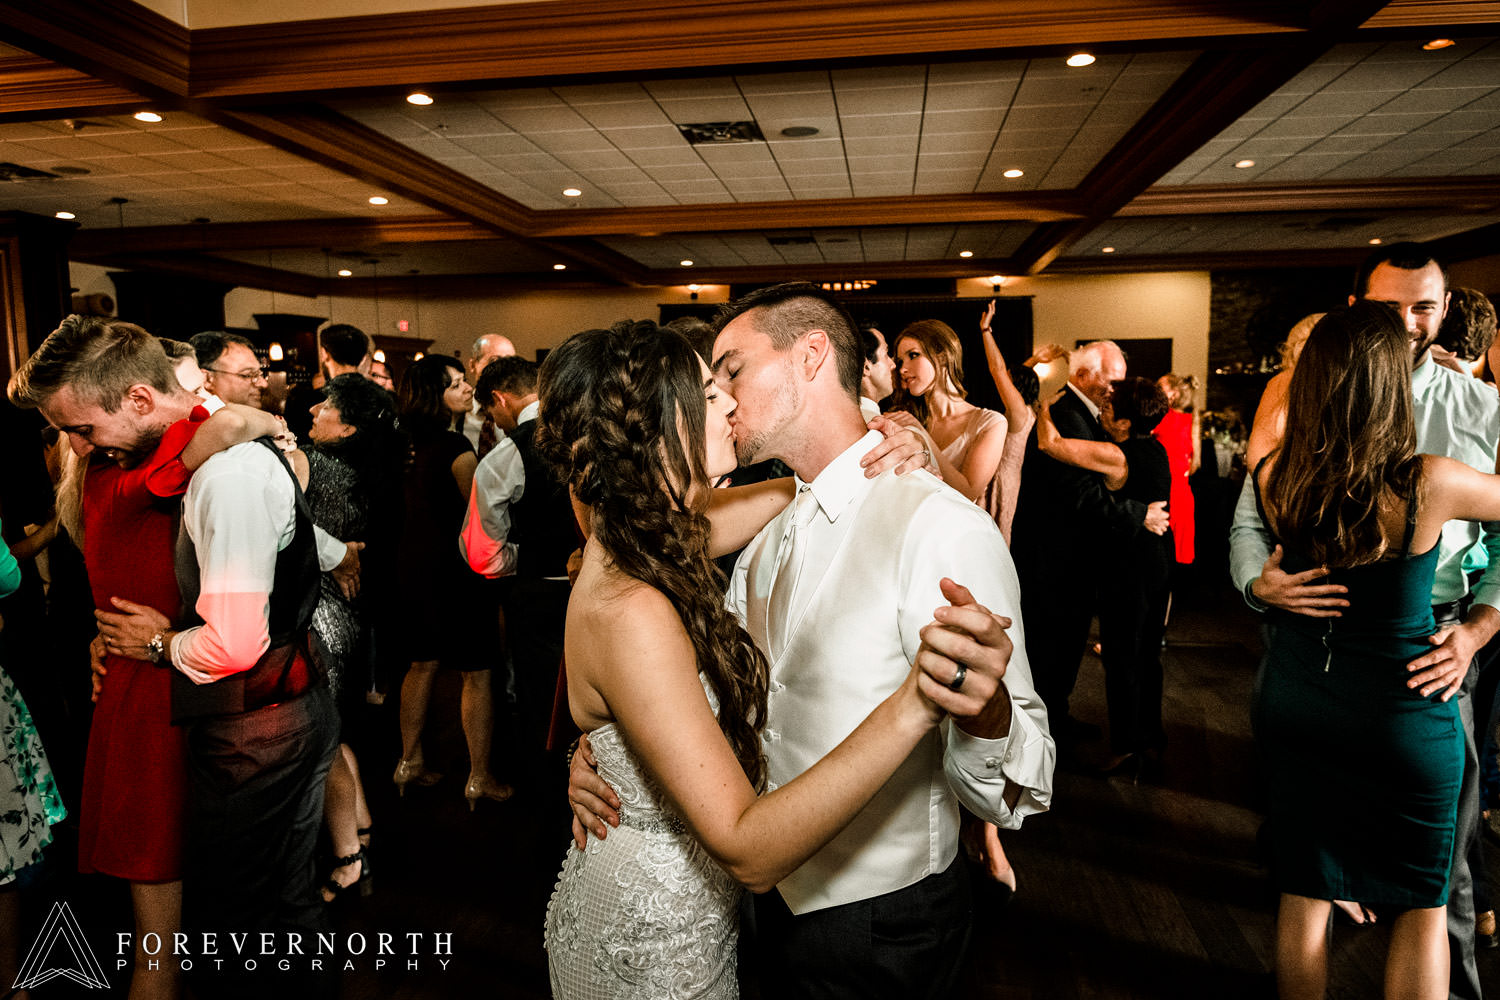 Mendyk-Valenzano-Family-Winery-NJ-Wedding-Photographer-34.JPG